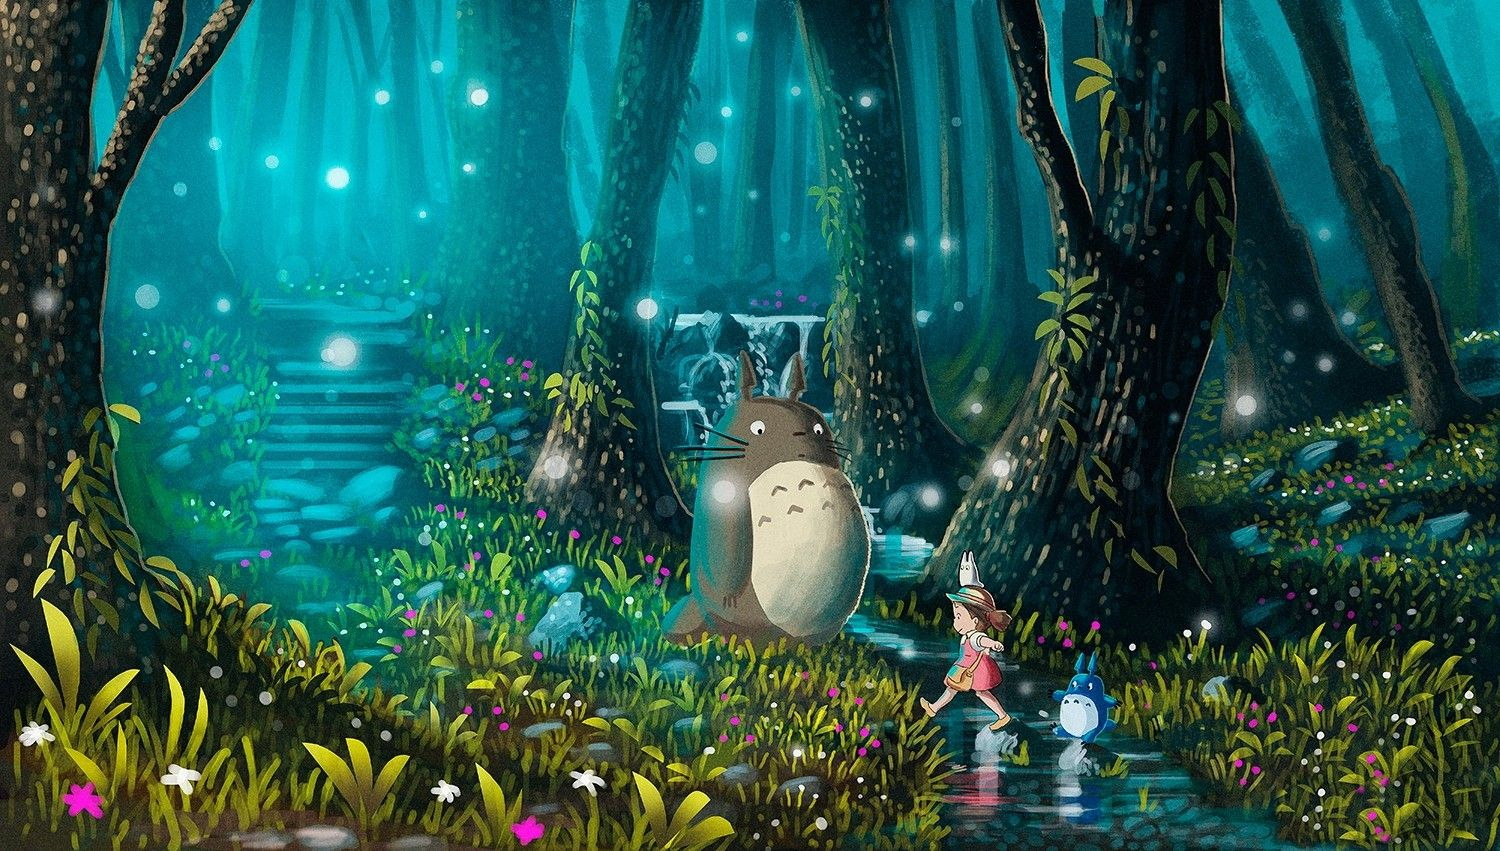 Totoro Wallpapers - Top Free Totoro Backgrounds ...